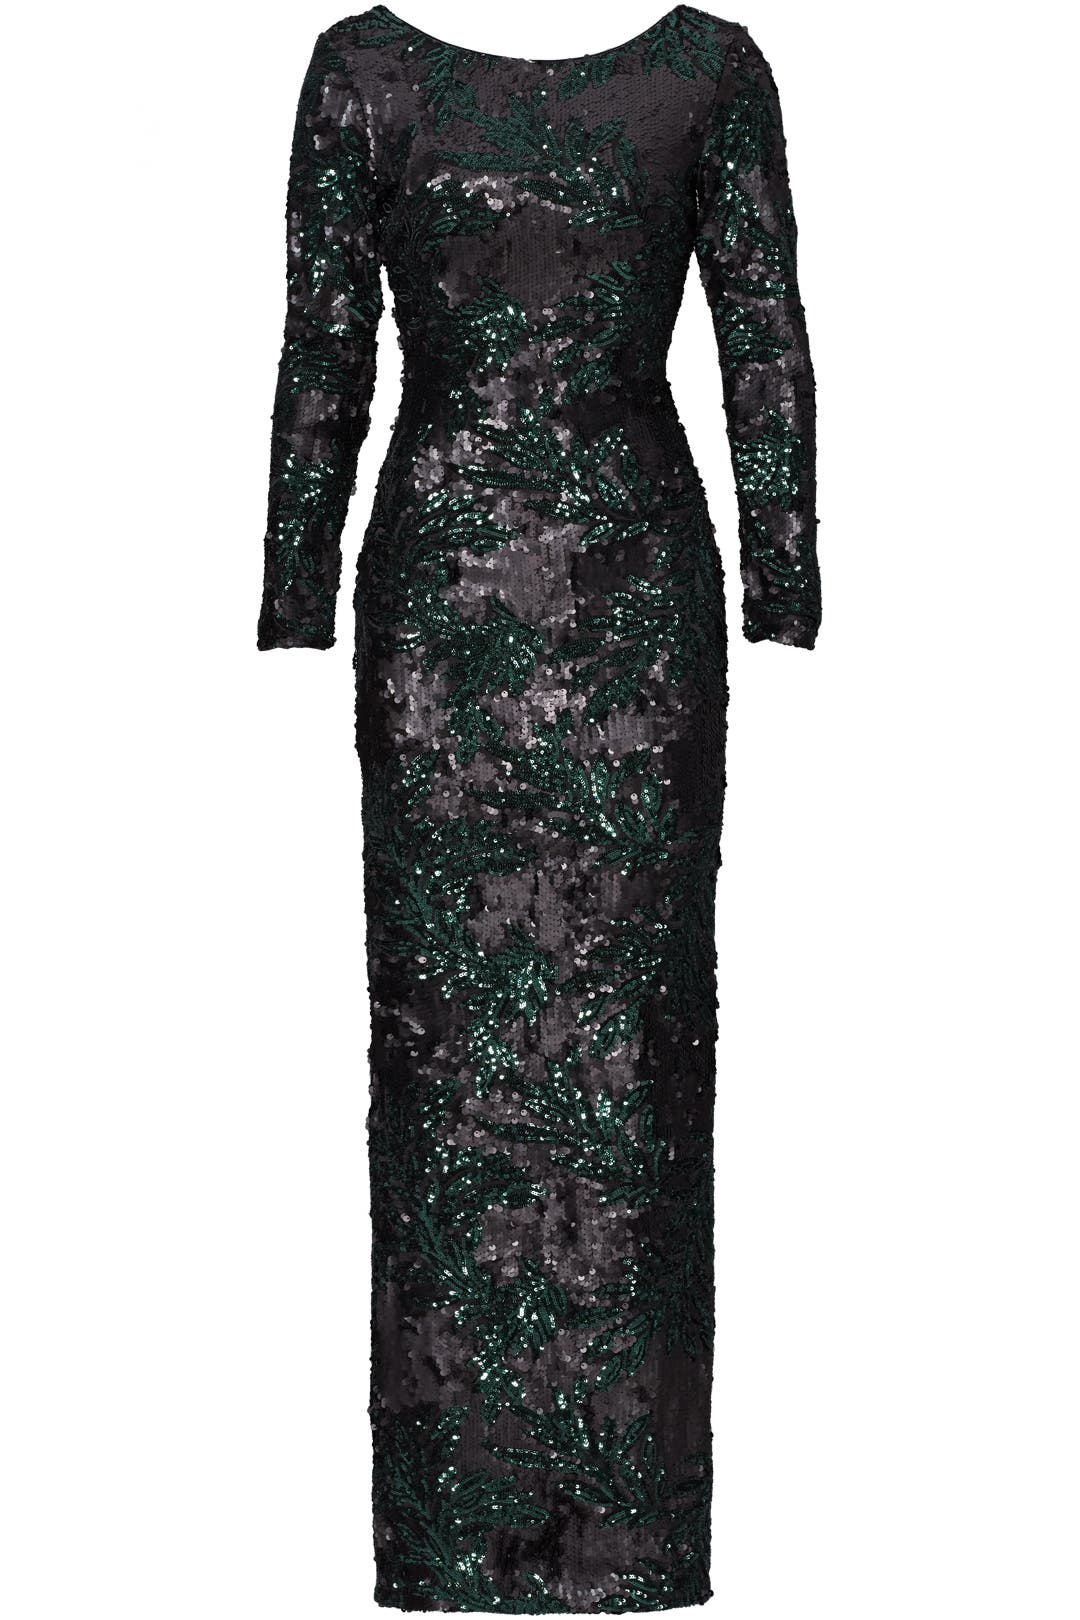 Green Printed Sequin Gown by Slate & Willow for $70 - $90 | Rent the ...